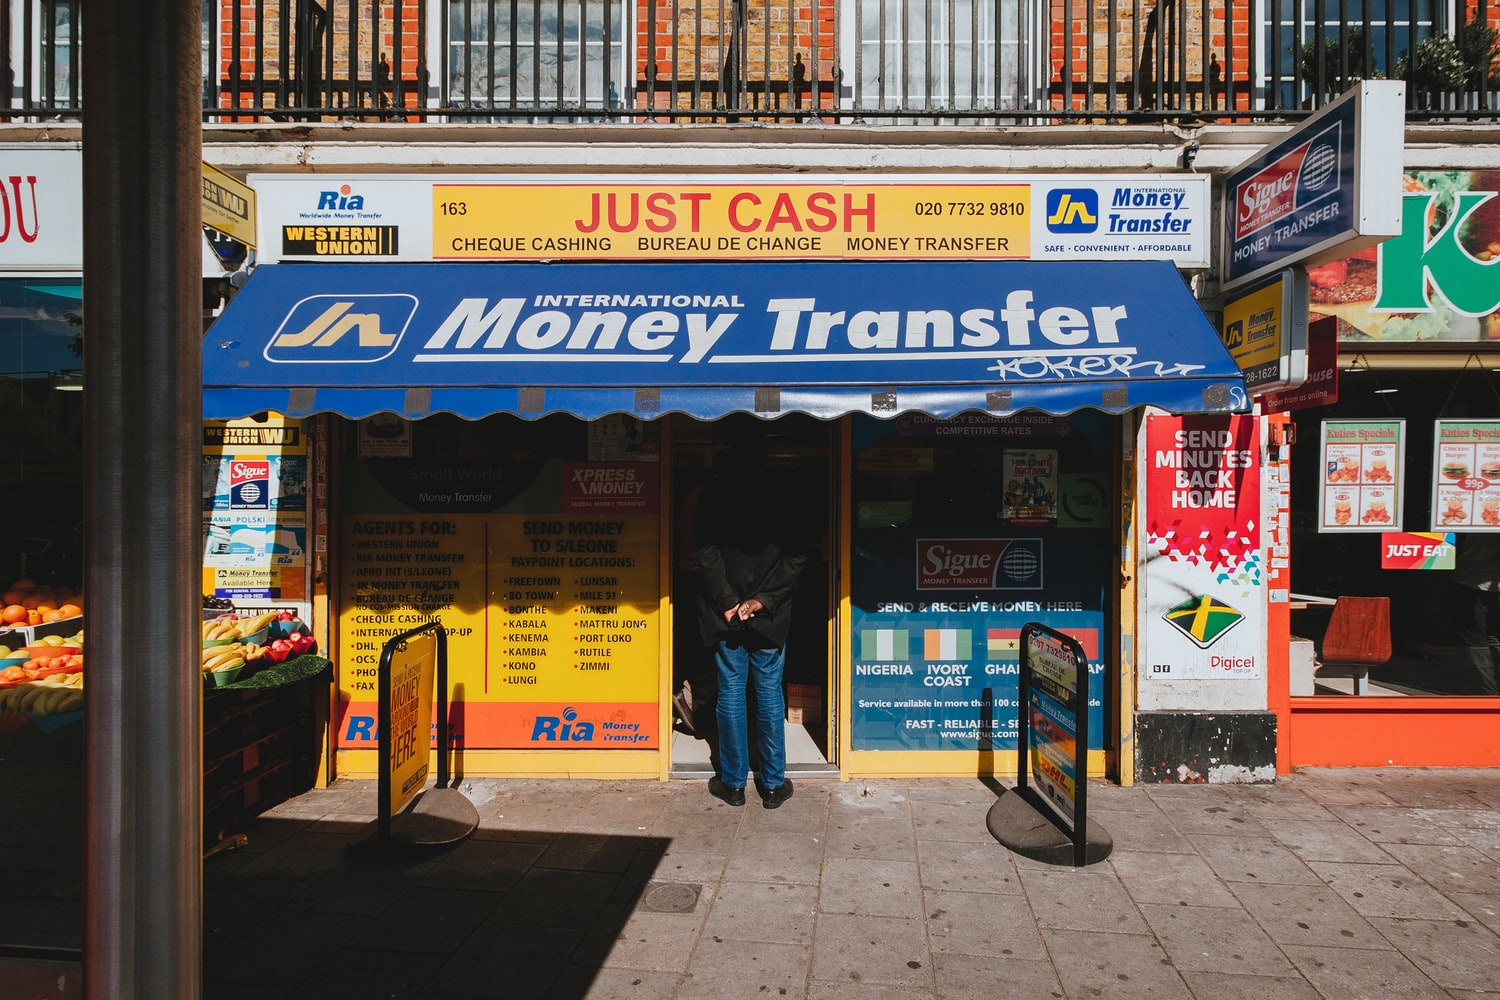 Money-Transfer_Photo-by-Alistair-MacRobert-on-Unsplash